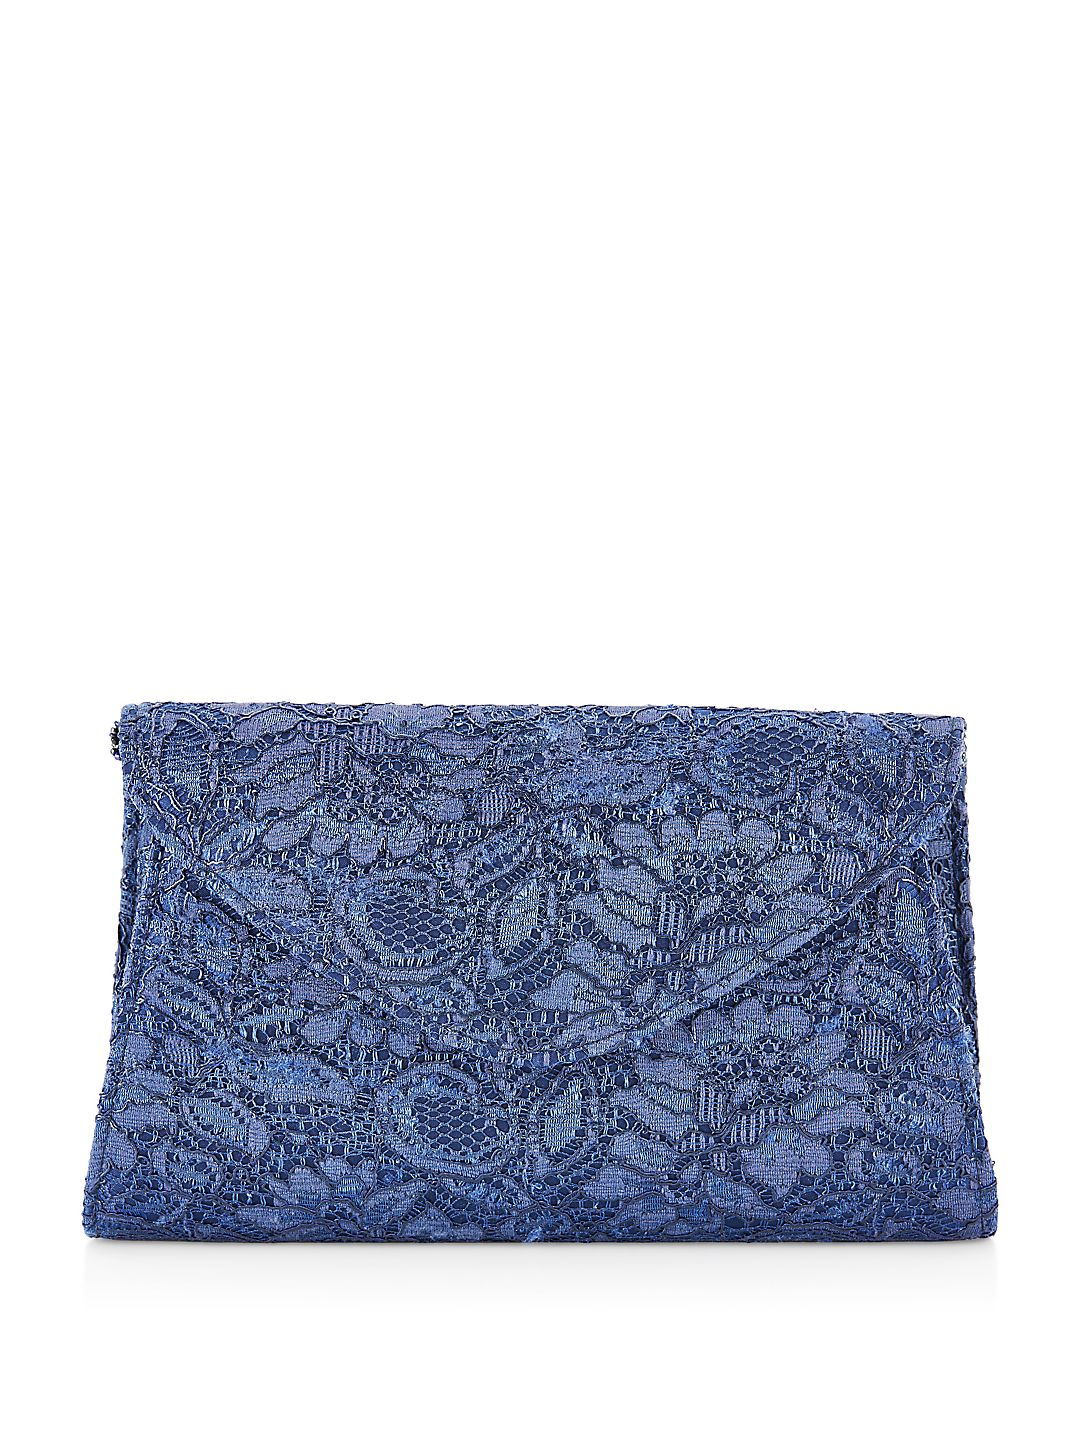 Seta Alicante Lace and Beaded Envelope Bag